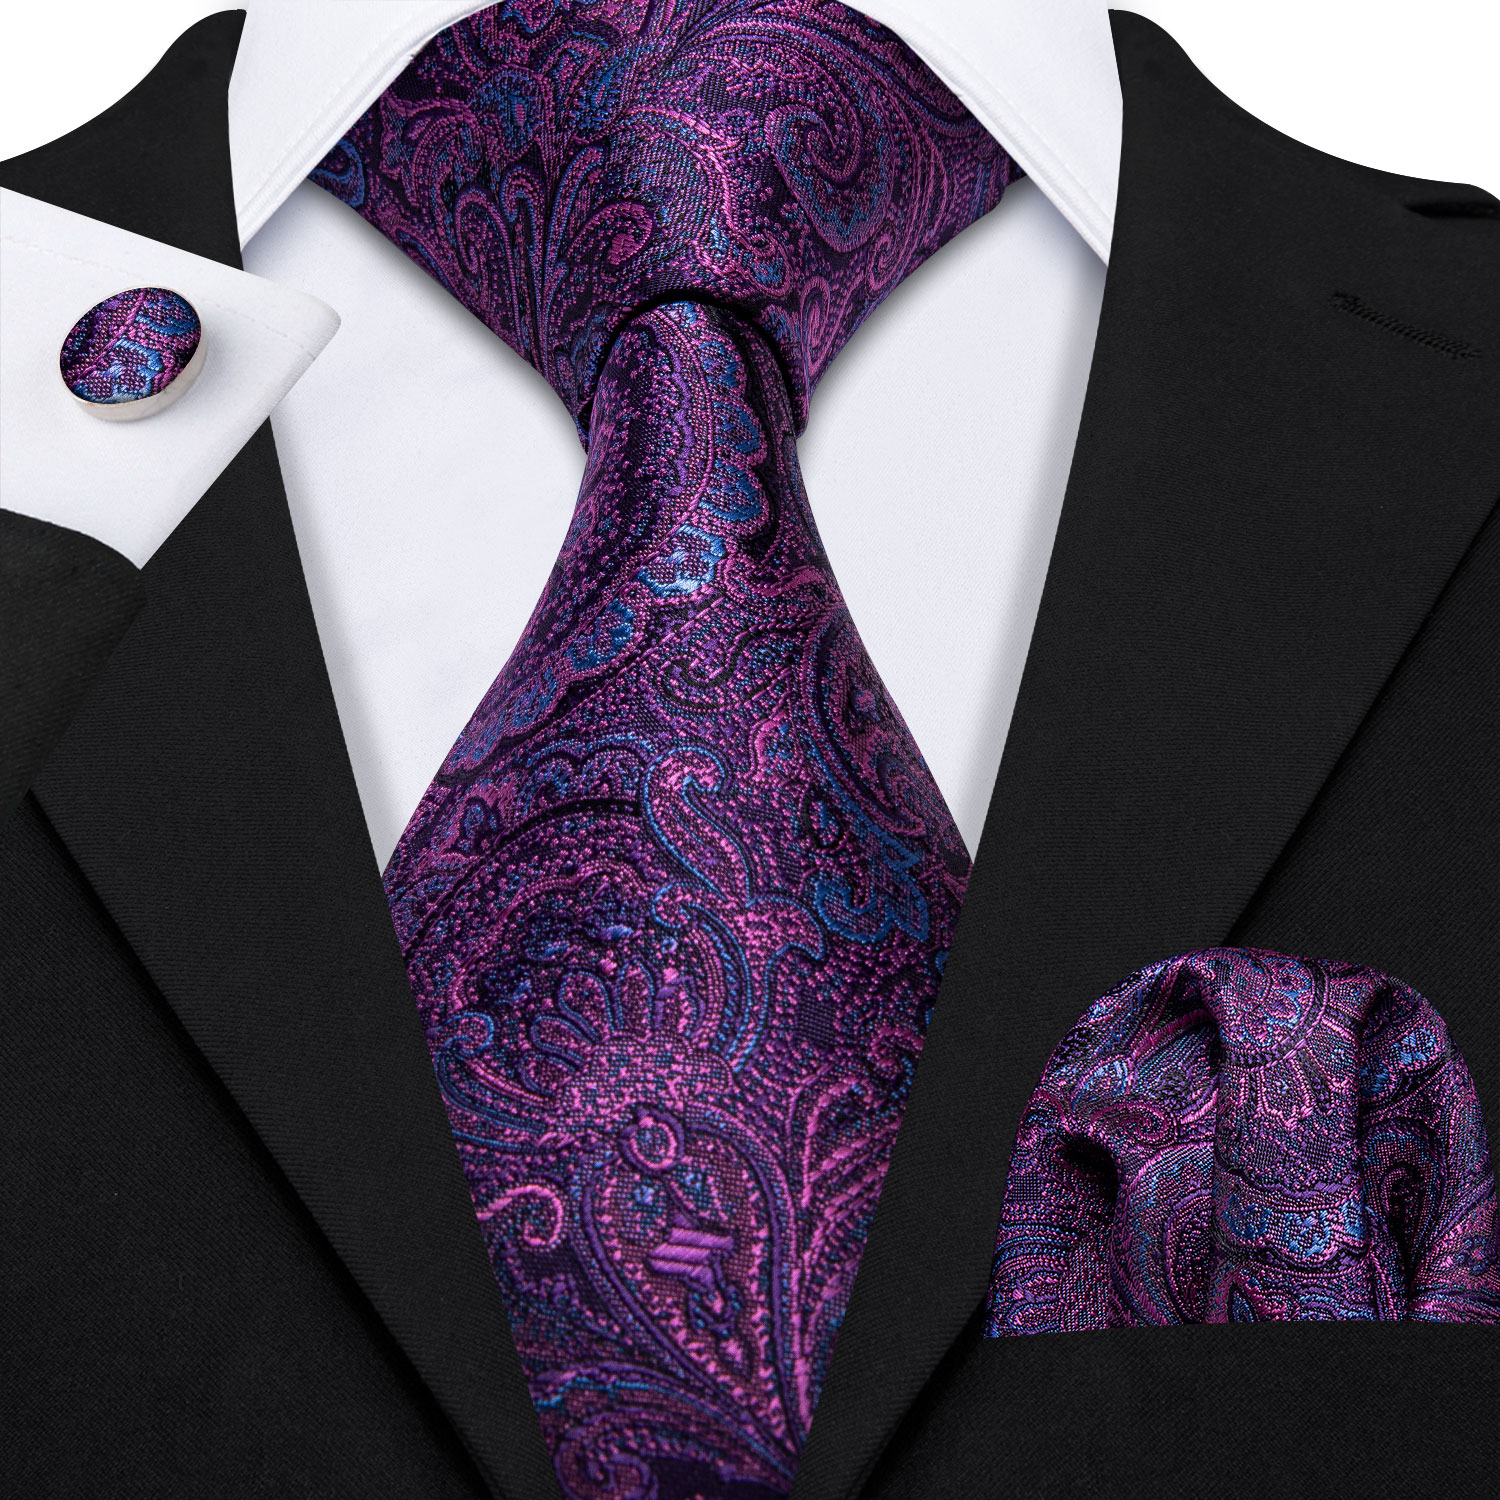 Barry.Wang Designer Purple Paisley Men Ties 8.5cm Wide Silk Tie Hanky Box Set Gifts For Men Wedding Groom Gravat Necktie LS-5158